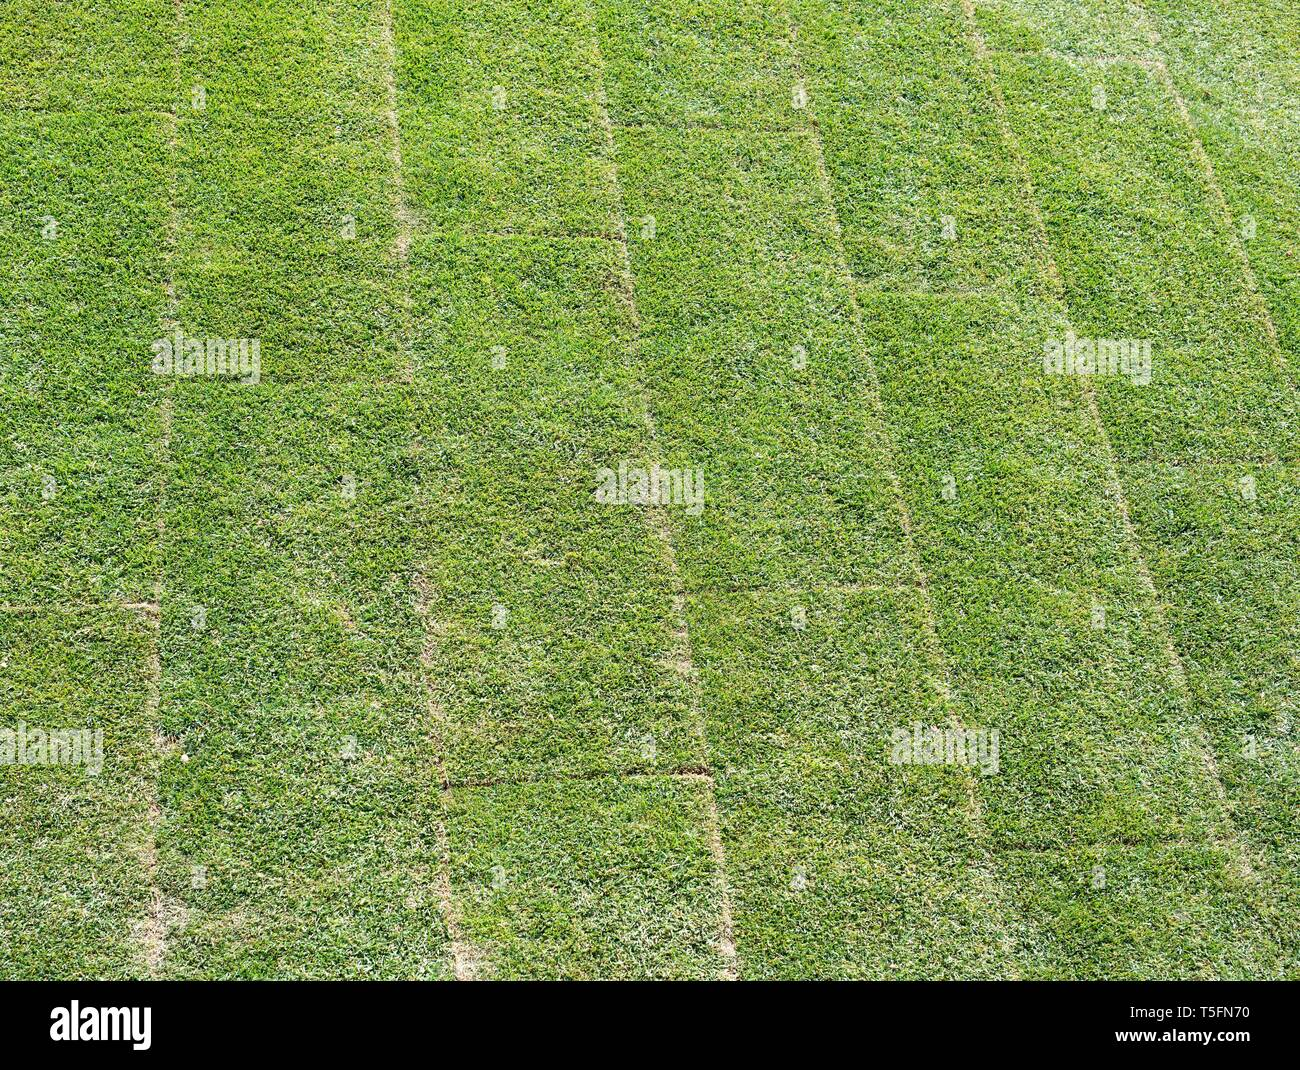 Newly laid lawn showing rolled out turf sections - Stock Image